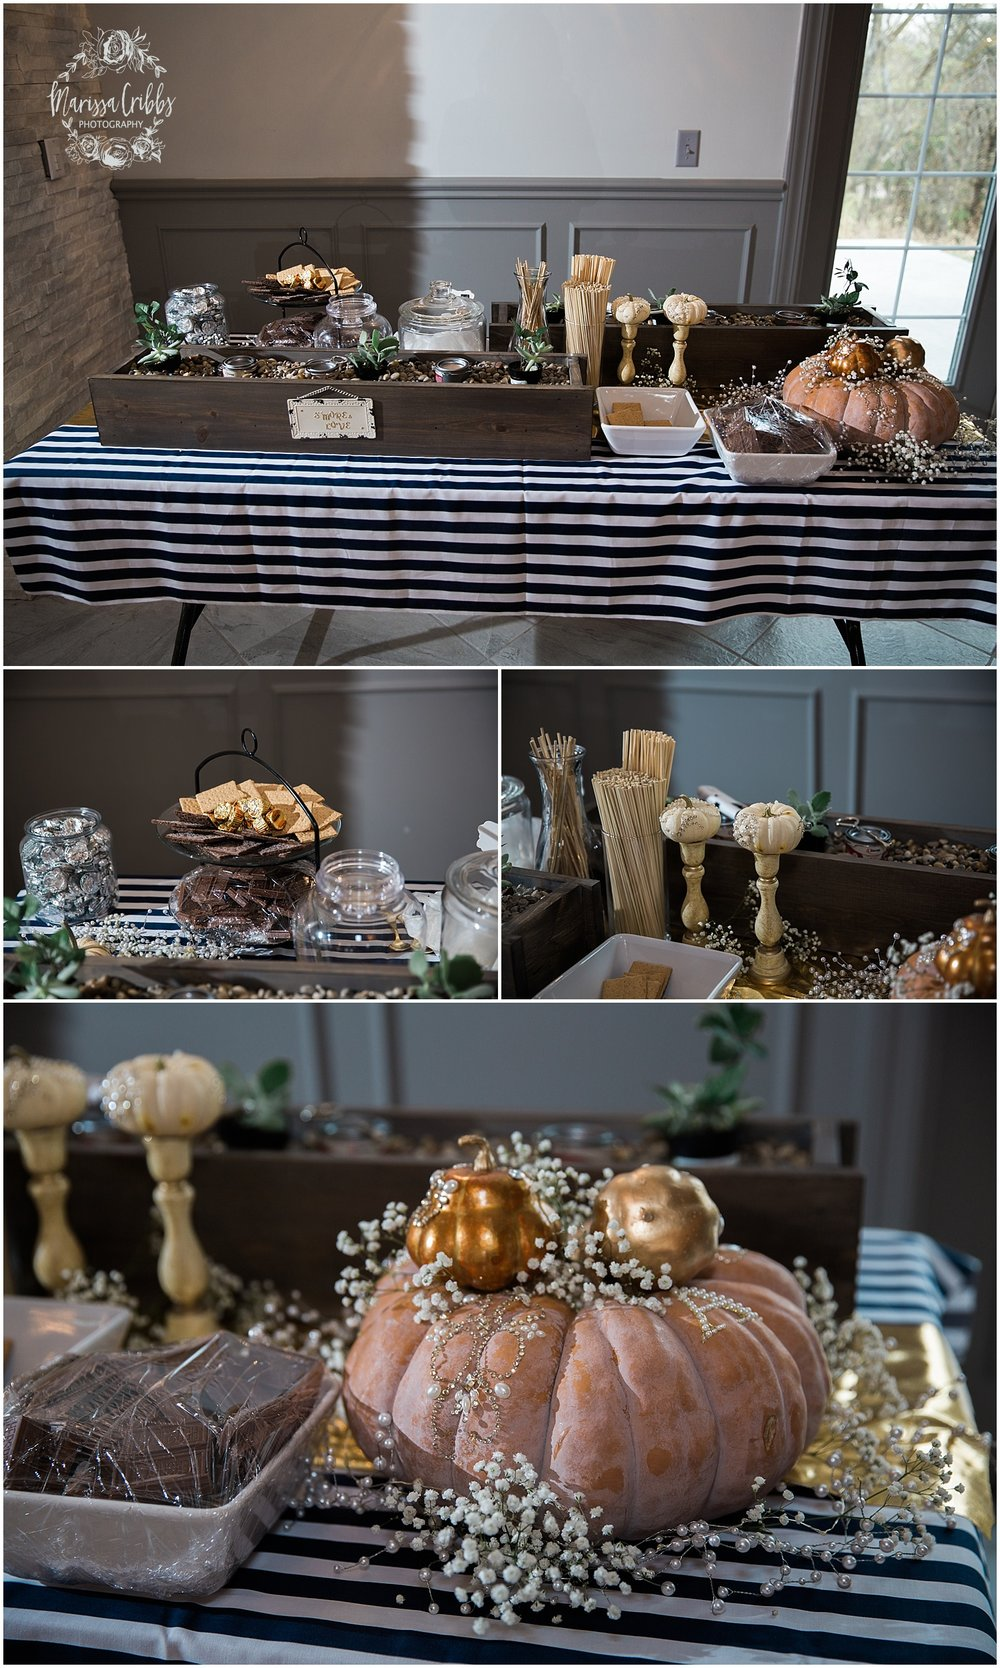 Alex+&+Amie+_+Eighteen+Ninety+Event+Space+_+Marissa+Cribbs+Photography+_+Kansas+City+Perfect+Wedding+Guide_1380.jpg